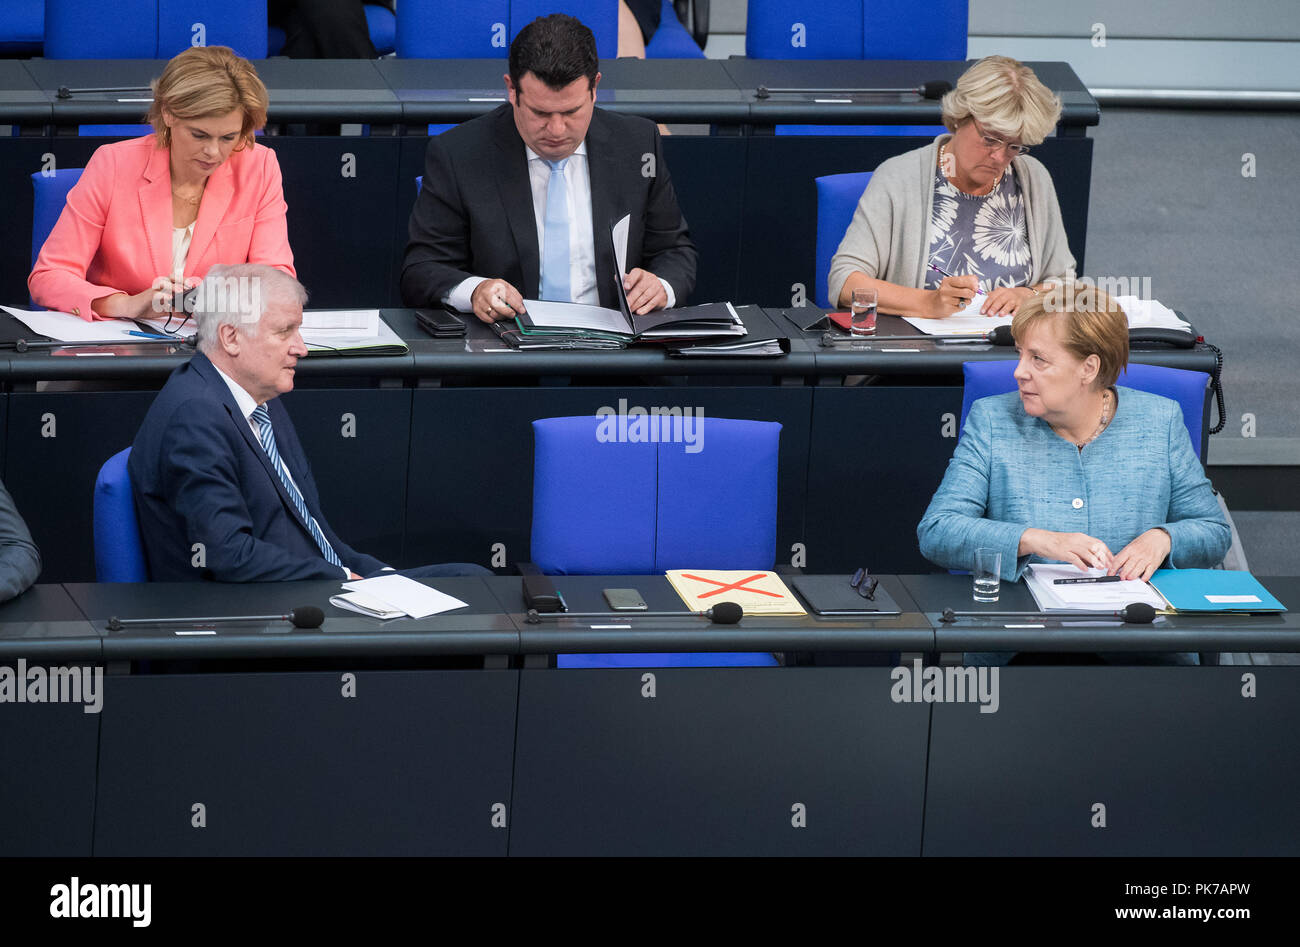 Berlin, Germany. 11 September 2018, Berlin: German Chancellor Angela Merkel (r, CDU) and Horst Seehofer (l, CSU), Federal Minister of the Interior, Home and Construction, will be talking during the plenary session in the German Bundestag. In the row behind it sit Julia Klöckner (CDU), Federal Minister for Food and Agriculture, Hubertus Heil (SPD), Federal Minister for Labour and Social Affairs, and Monika Grütters (CDU), Minister of State for Culture and the Media. The main topic of the 47th session of the 19th legislative period is the Federal Government's draft budget 2019 and the federal bu - Stock Image